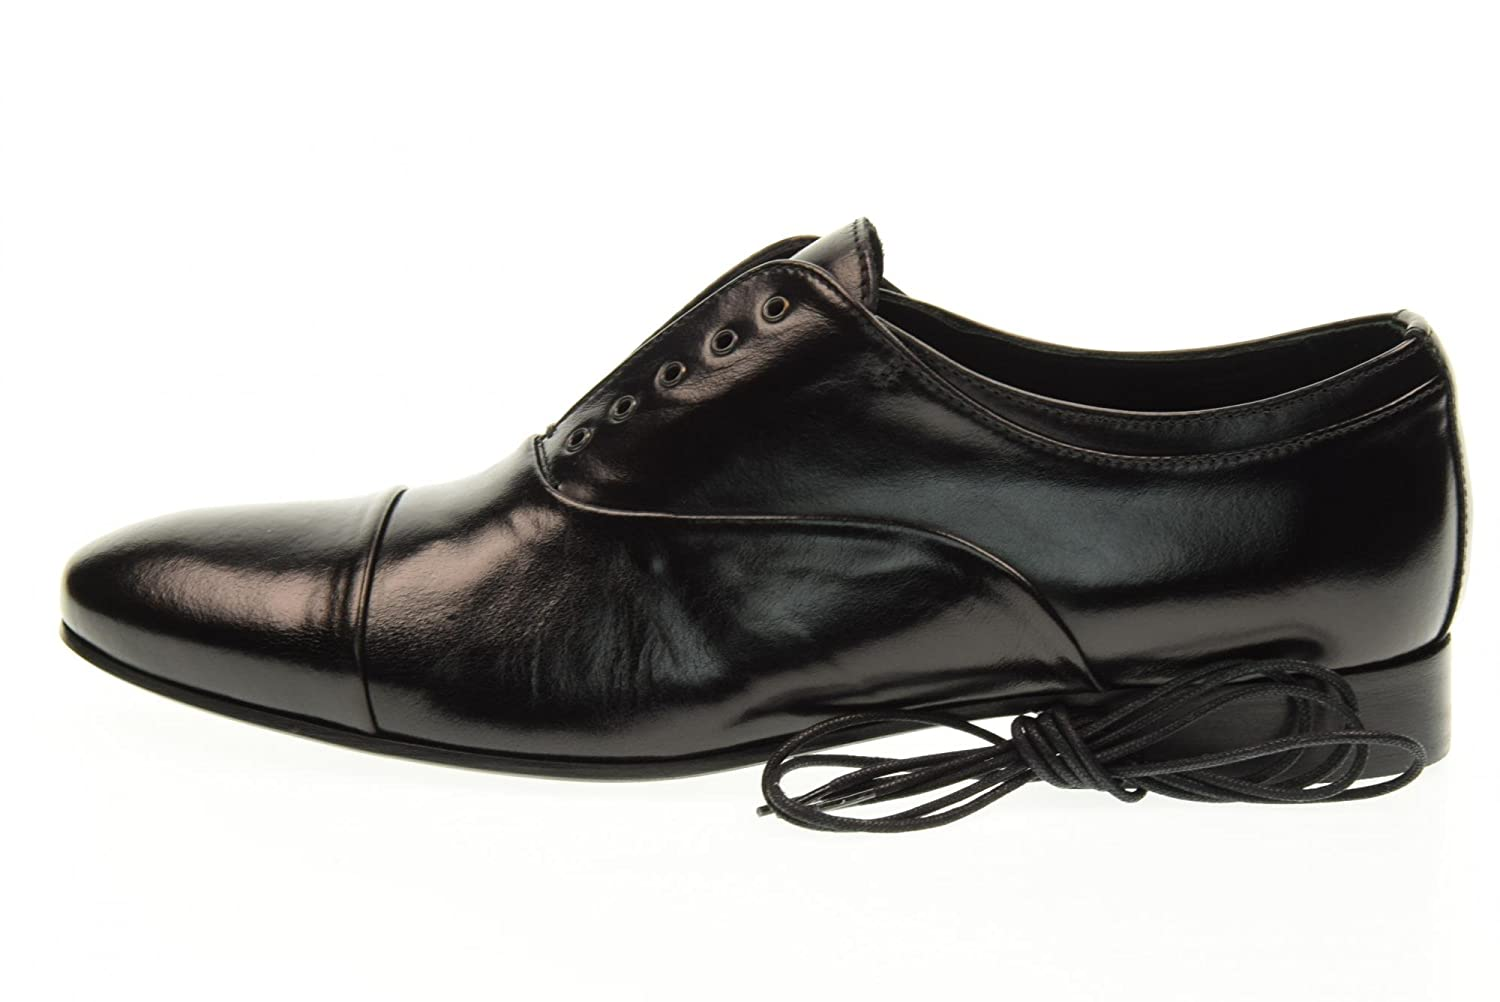 competitive price b0afc e2261 Amazon.com | EVEET Men's Shoes Without Laces 15017 | Loafers ...